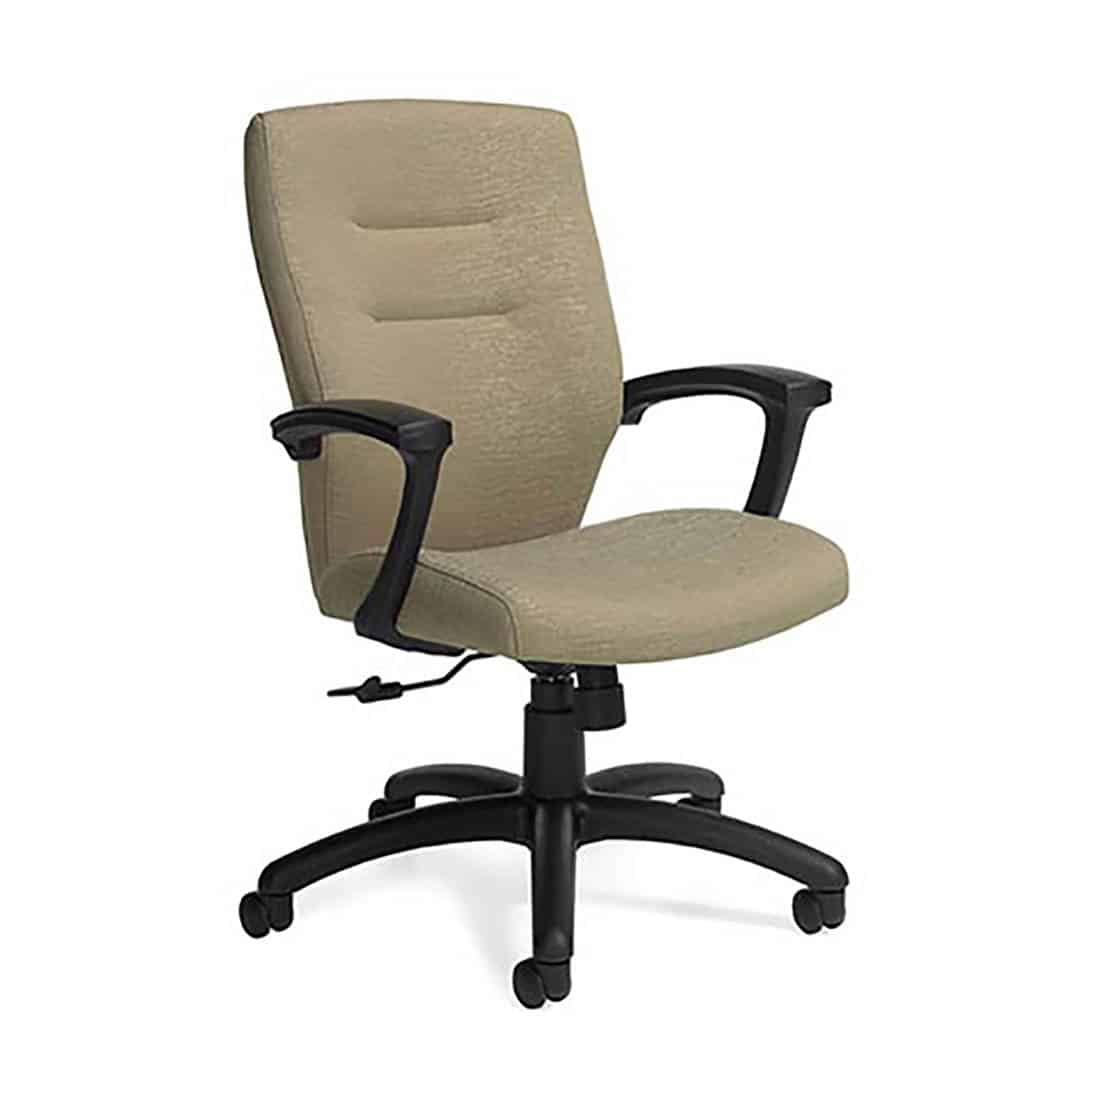 Global Synopsis Medium Back Tilter Conference Room Chair Curved upholstered back with double stitch detailing